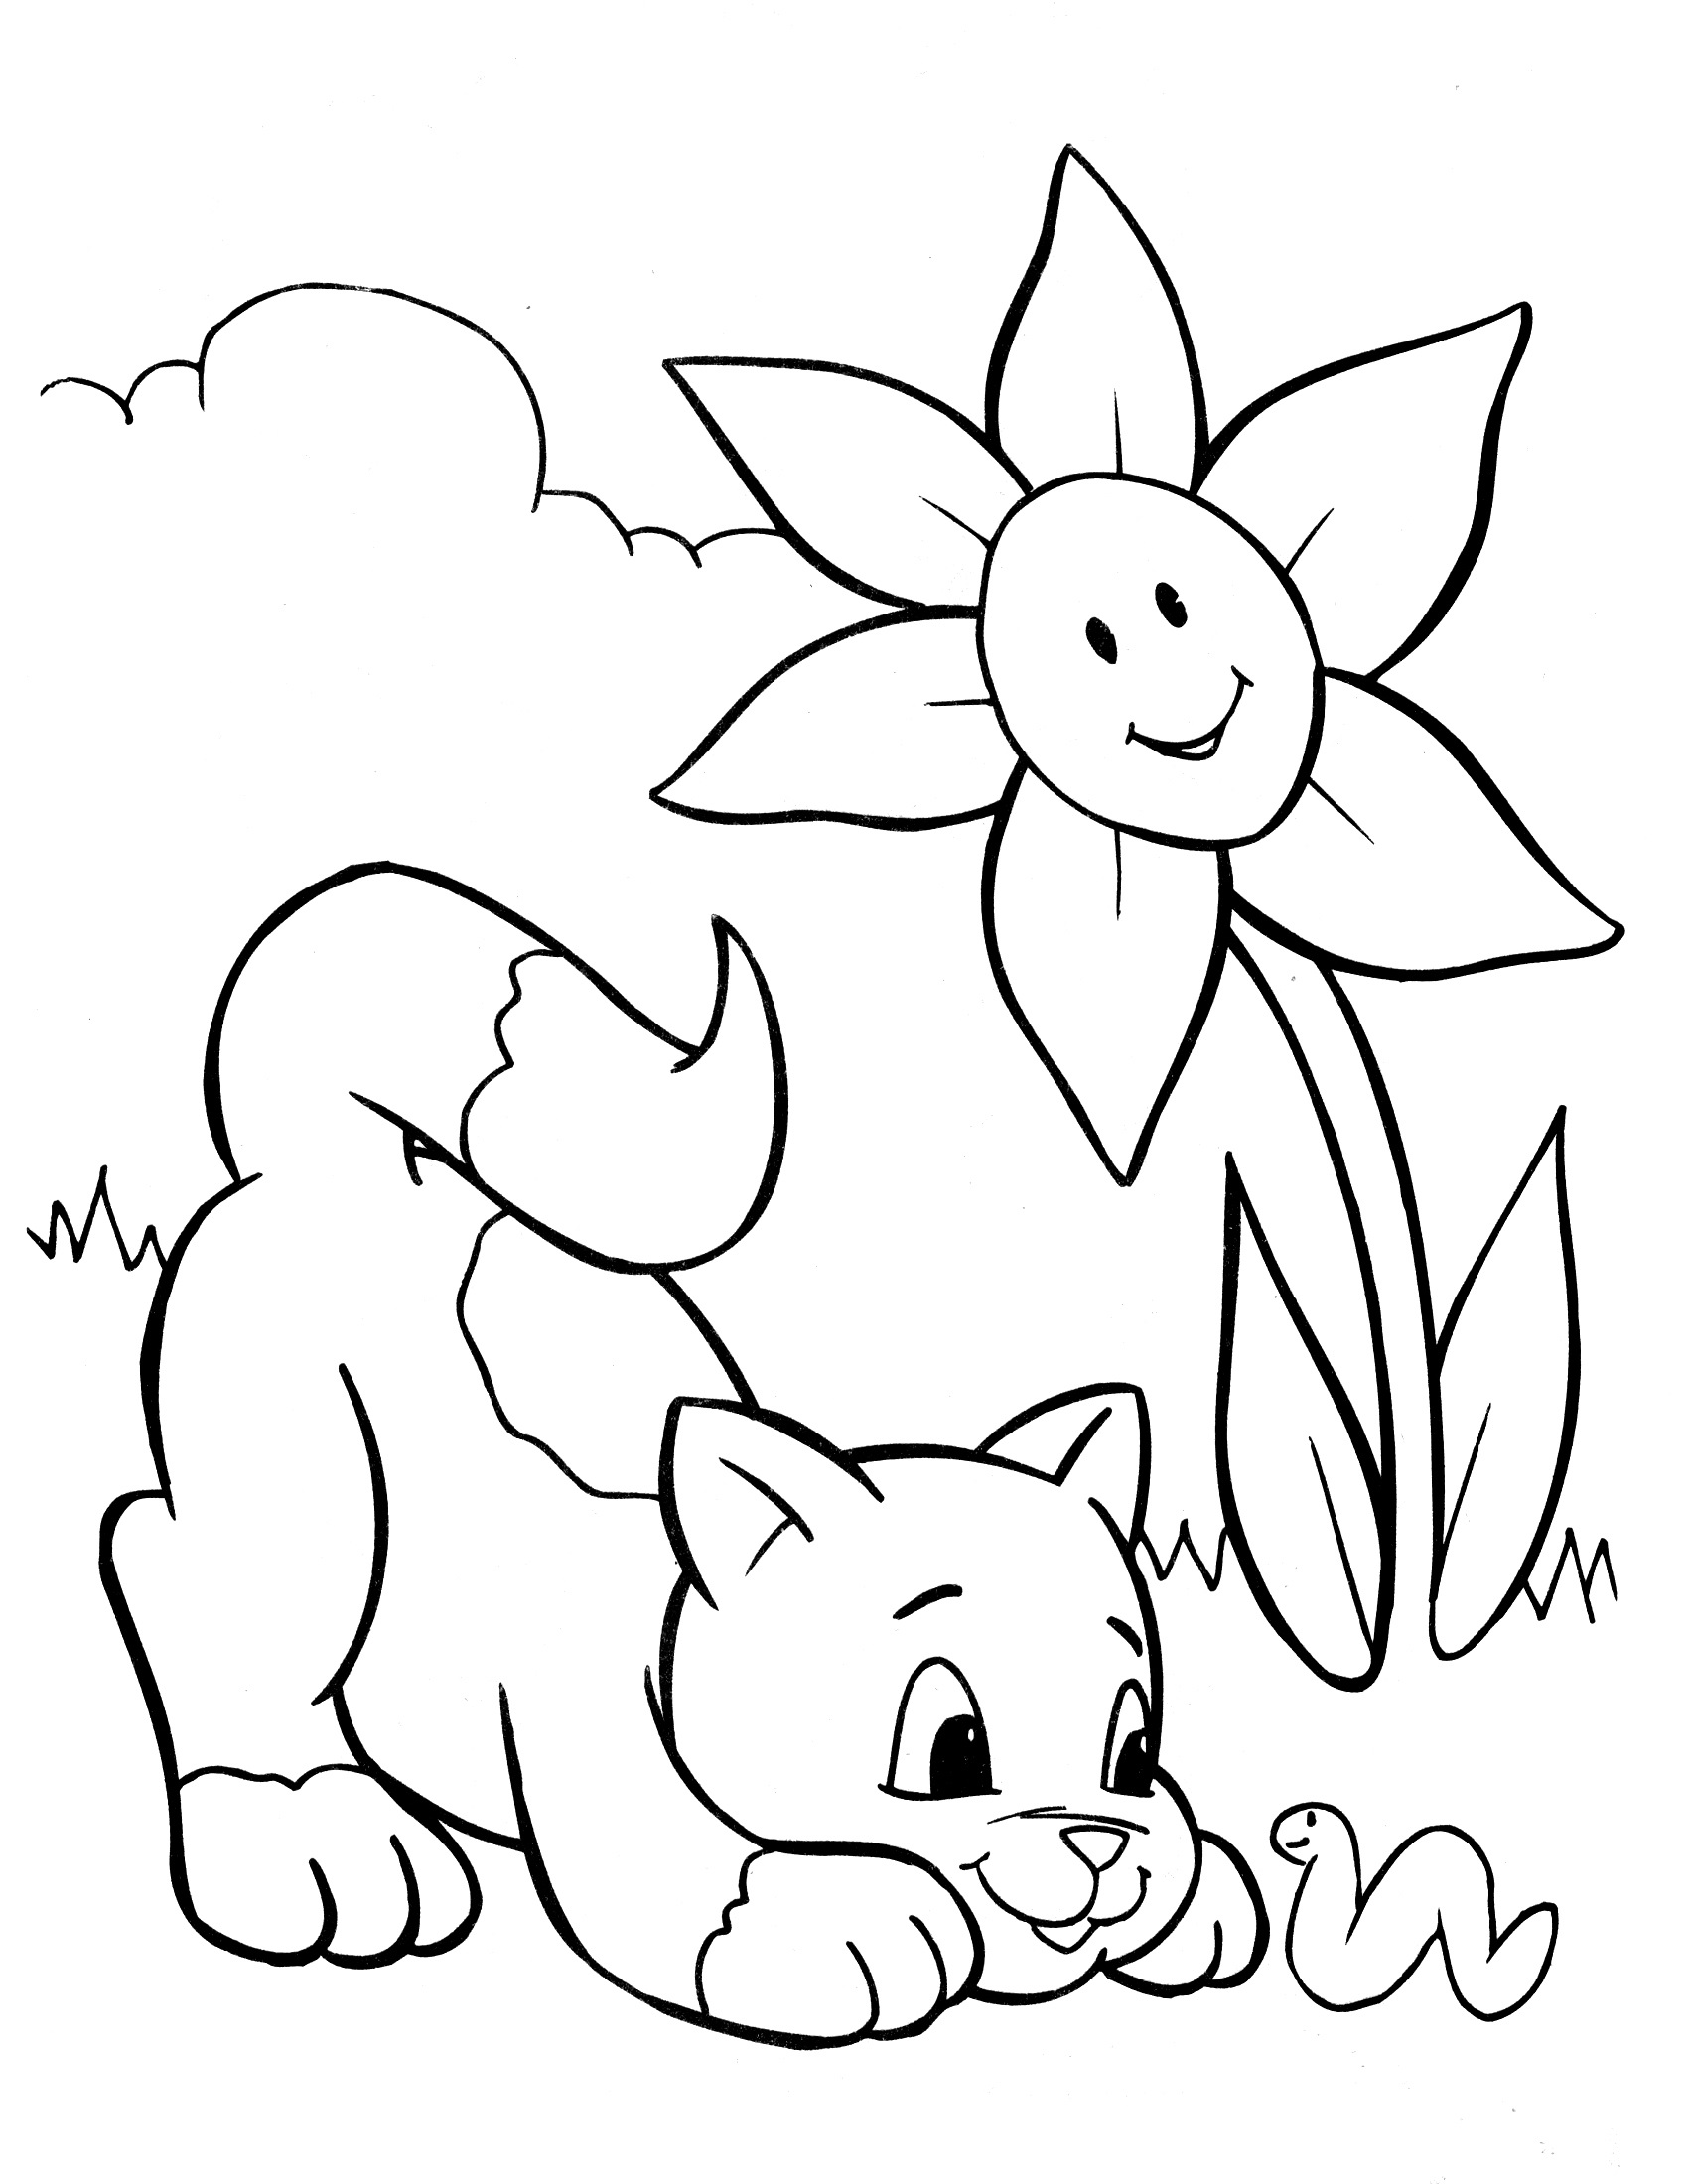 colouring pages cat and flower for kids